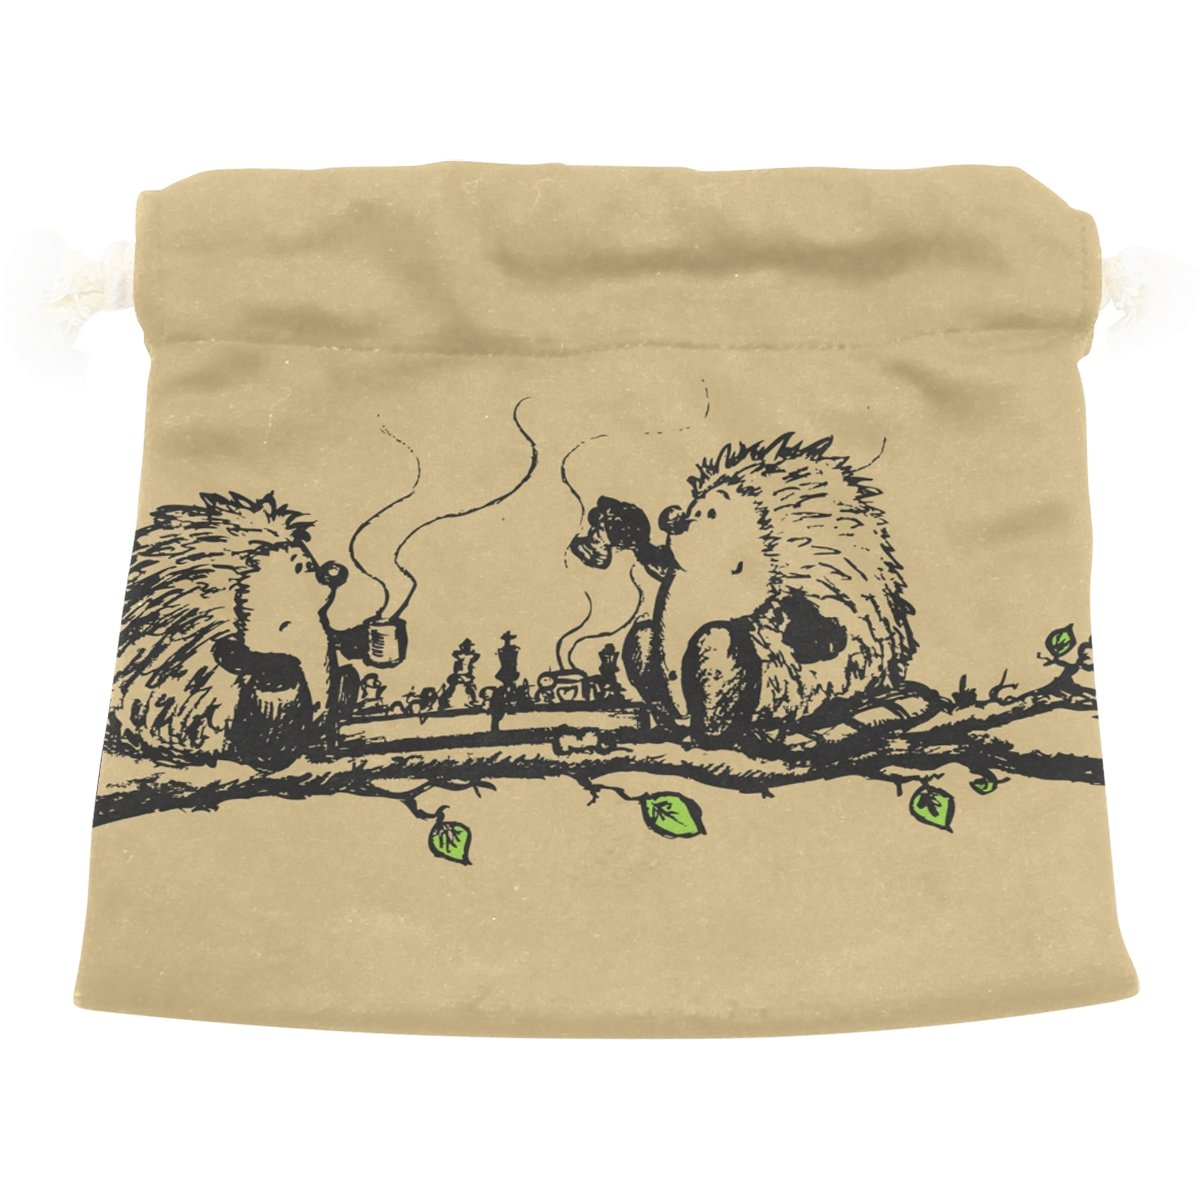 Dragon Sword Hedgehogs Playing Chess Gift Bags Jewelry Drawstring Pouches for Wedding Party, 5.5x5.5 Inch